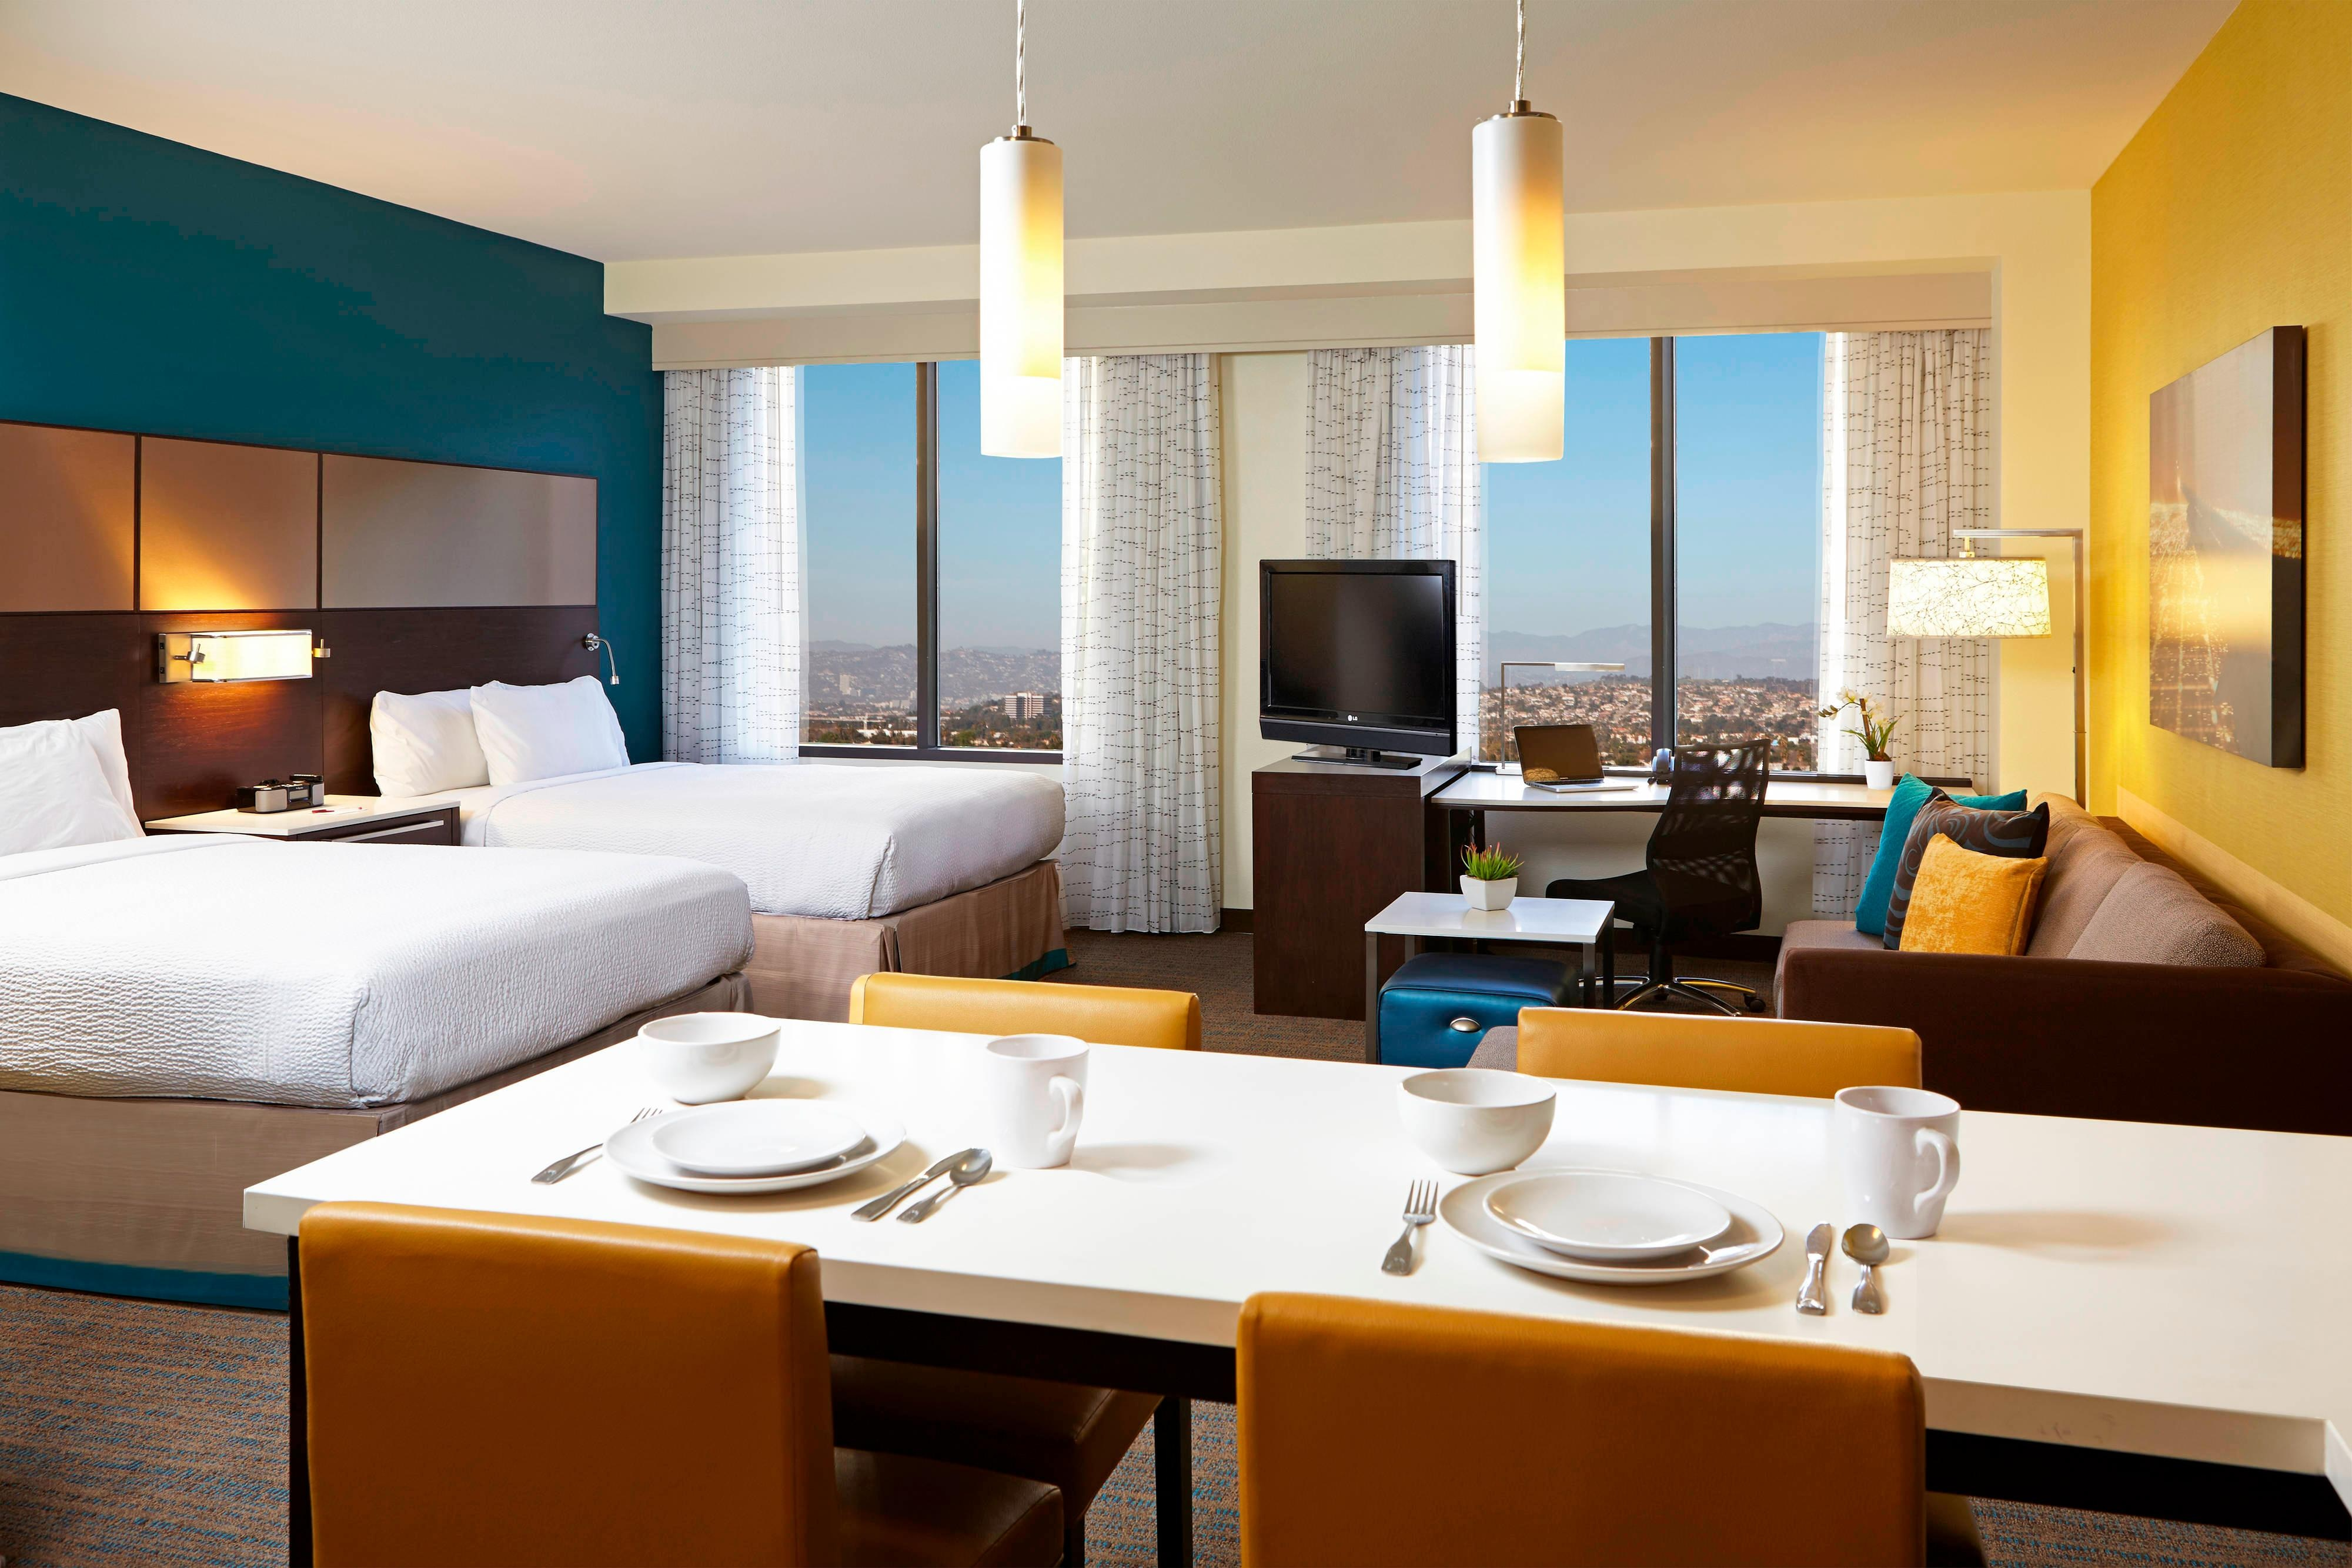 residence inn by marriott los angeles lax guest suites. Black Bedroom Furniture Sets. Home Design Ideas